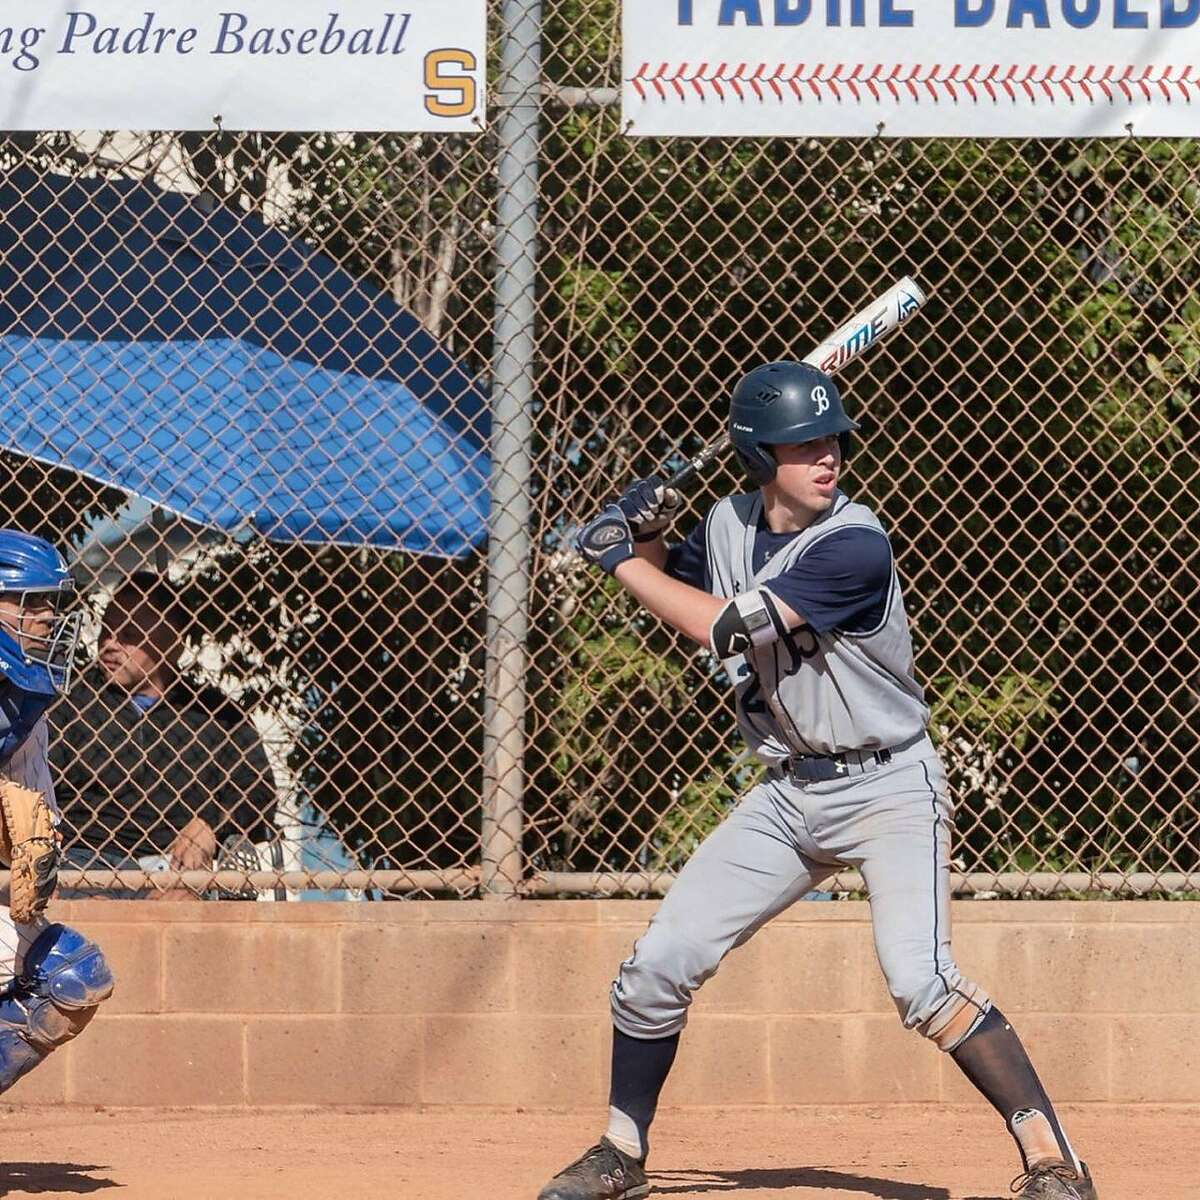 Bellarmine senior outfielder Aidan Kelly has a scholarship offer from the Air Force Academy, but he might have a tough time landing more because of the coronavirus shutdown.